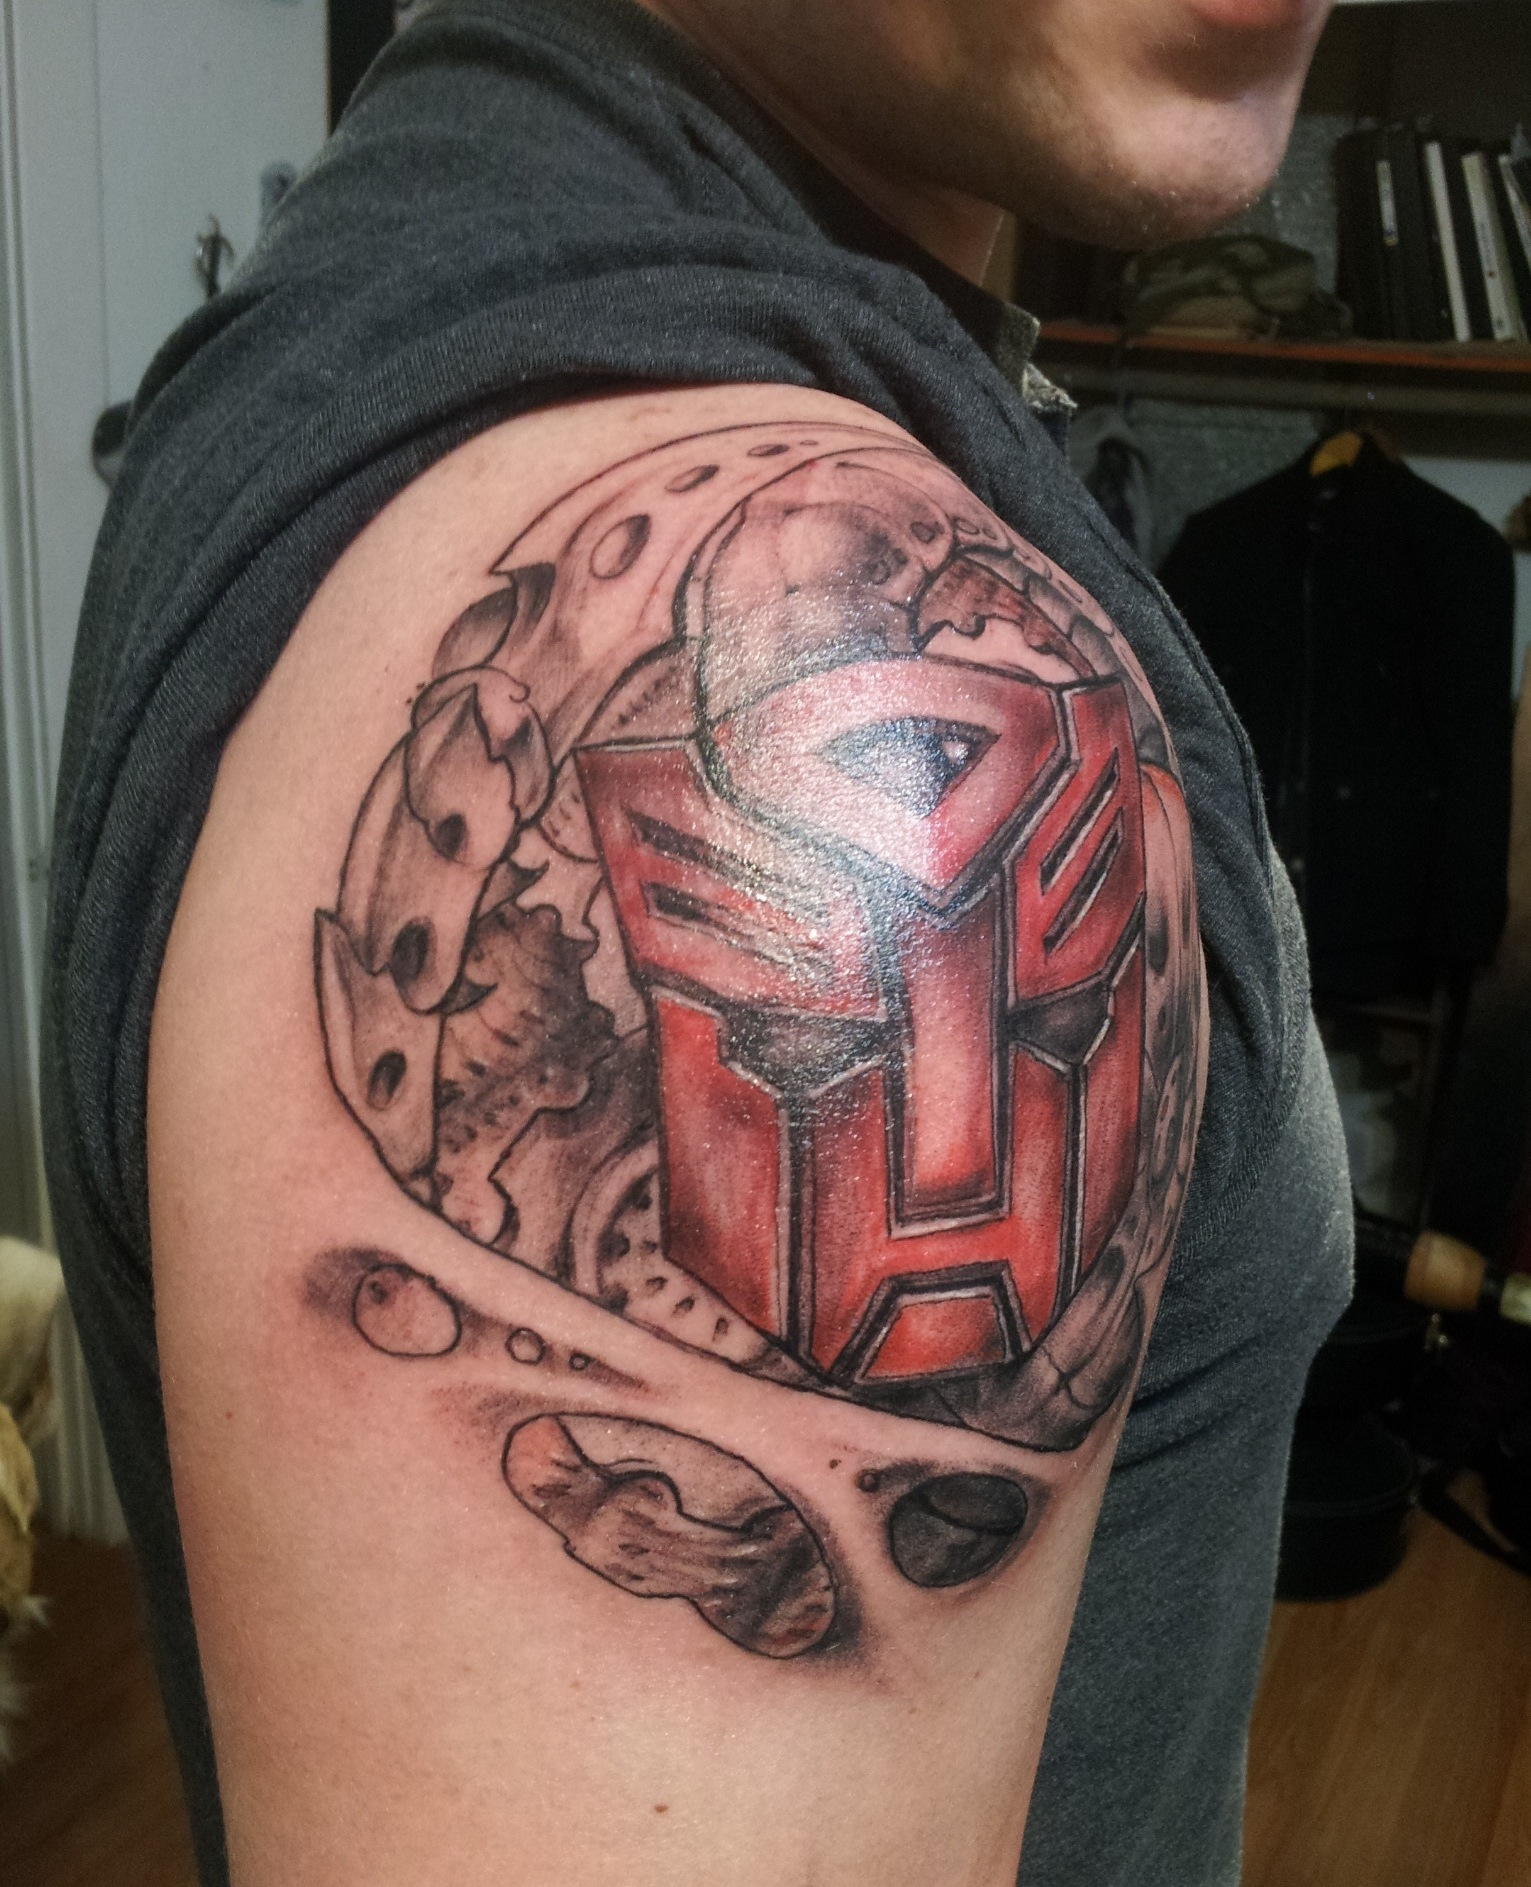 Tattoo Designs Tattoo Pictures: Transformers Tattoos Designs, Ideas And Meaning